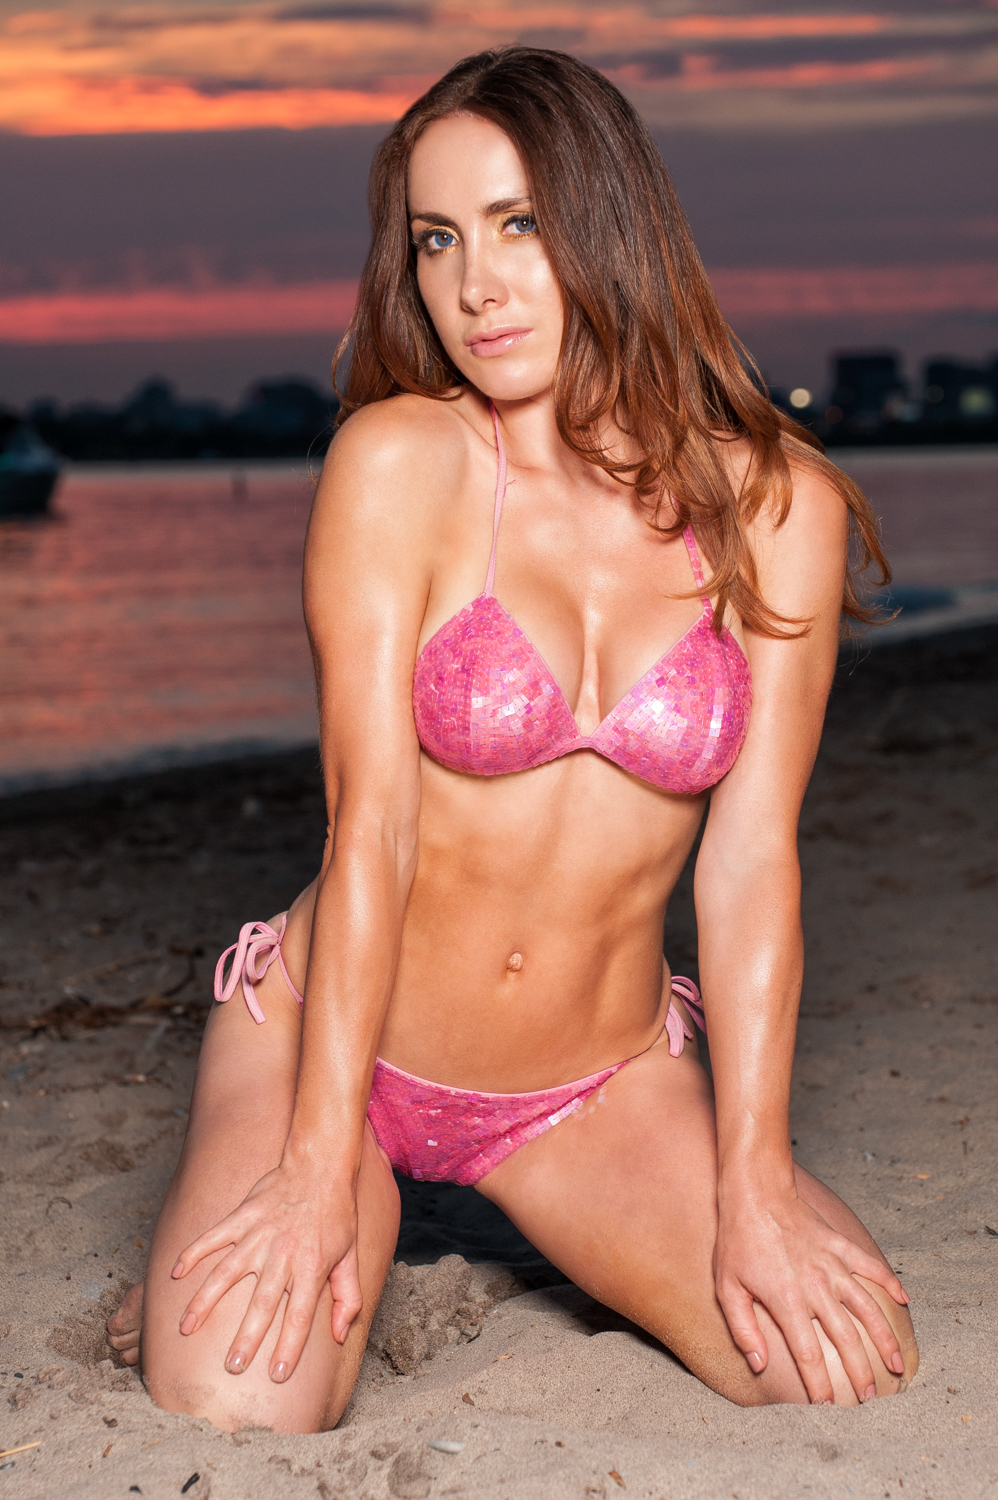 Toronto and Hamilton Fitness Bikini Photographer -Marek Michalek 006-2.jpg